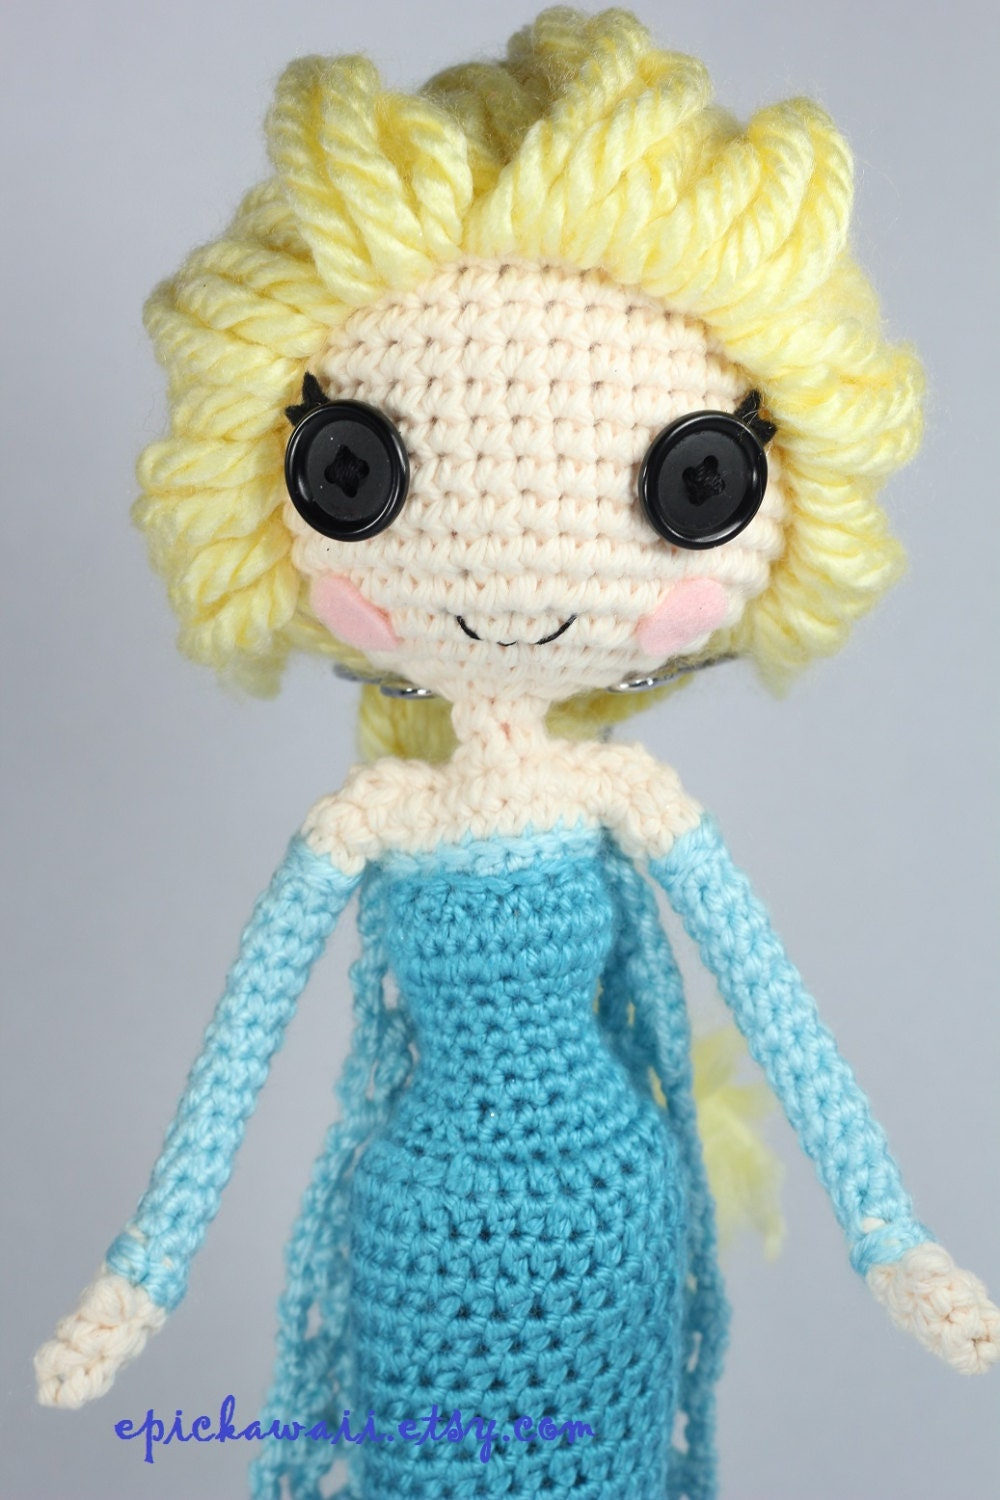 PATTERN: Elsa Crochet Amigurumi Doll by epickawaii on Etsy